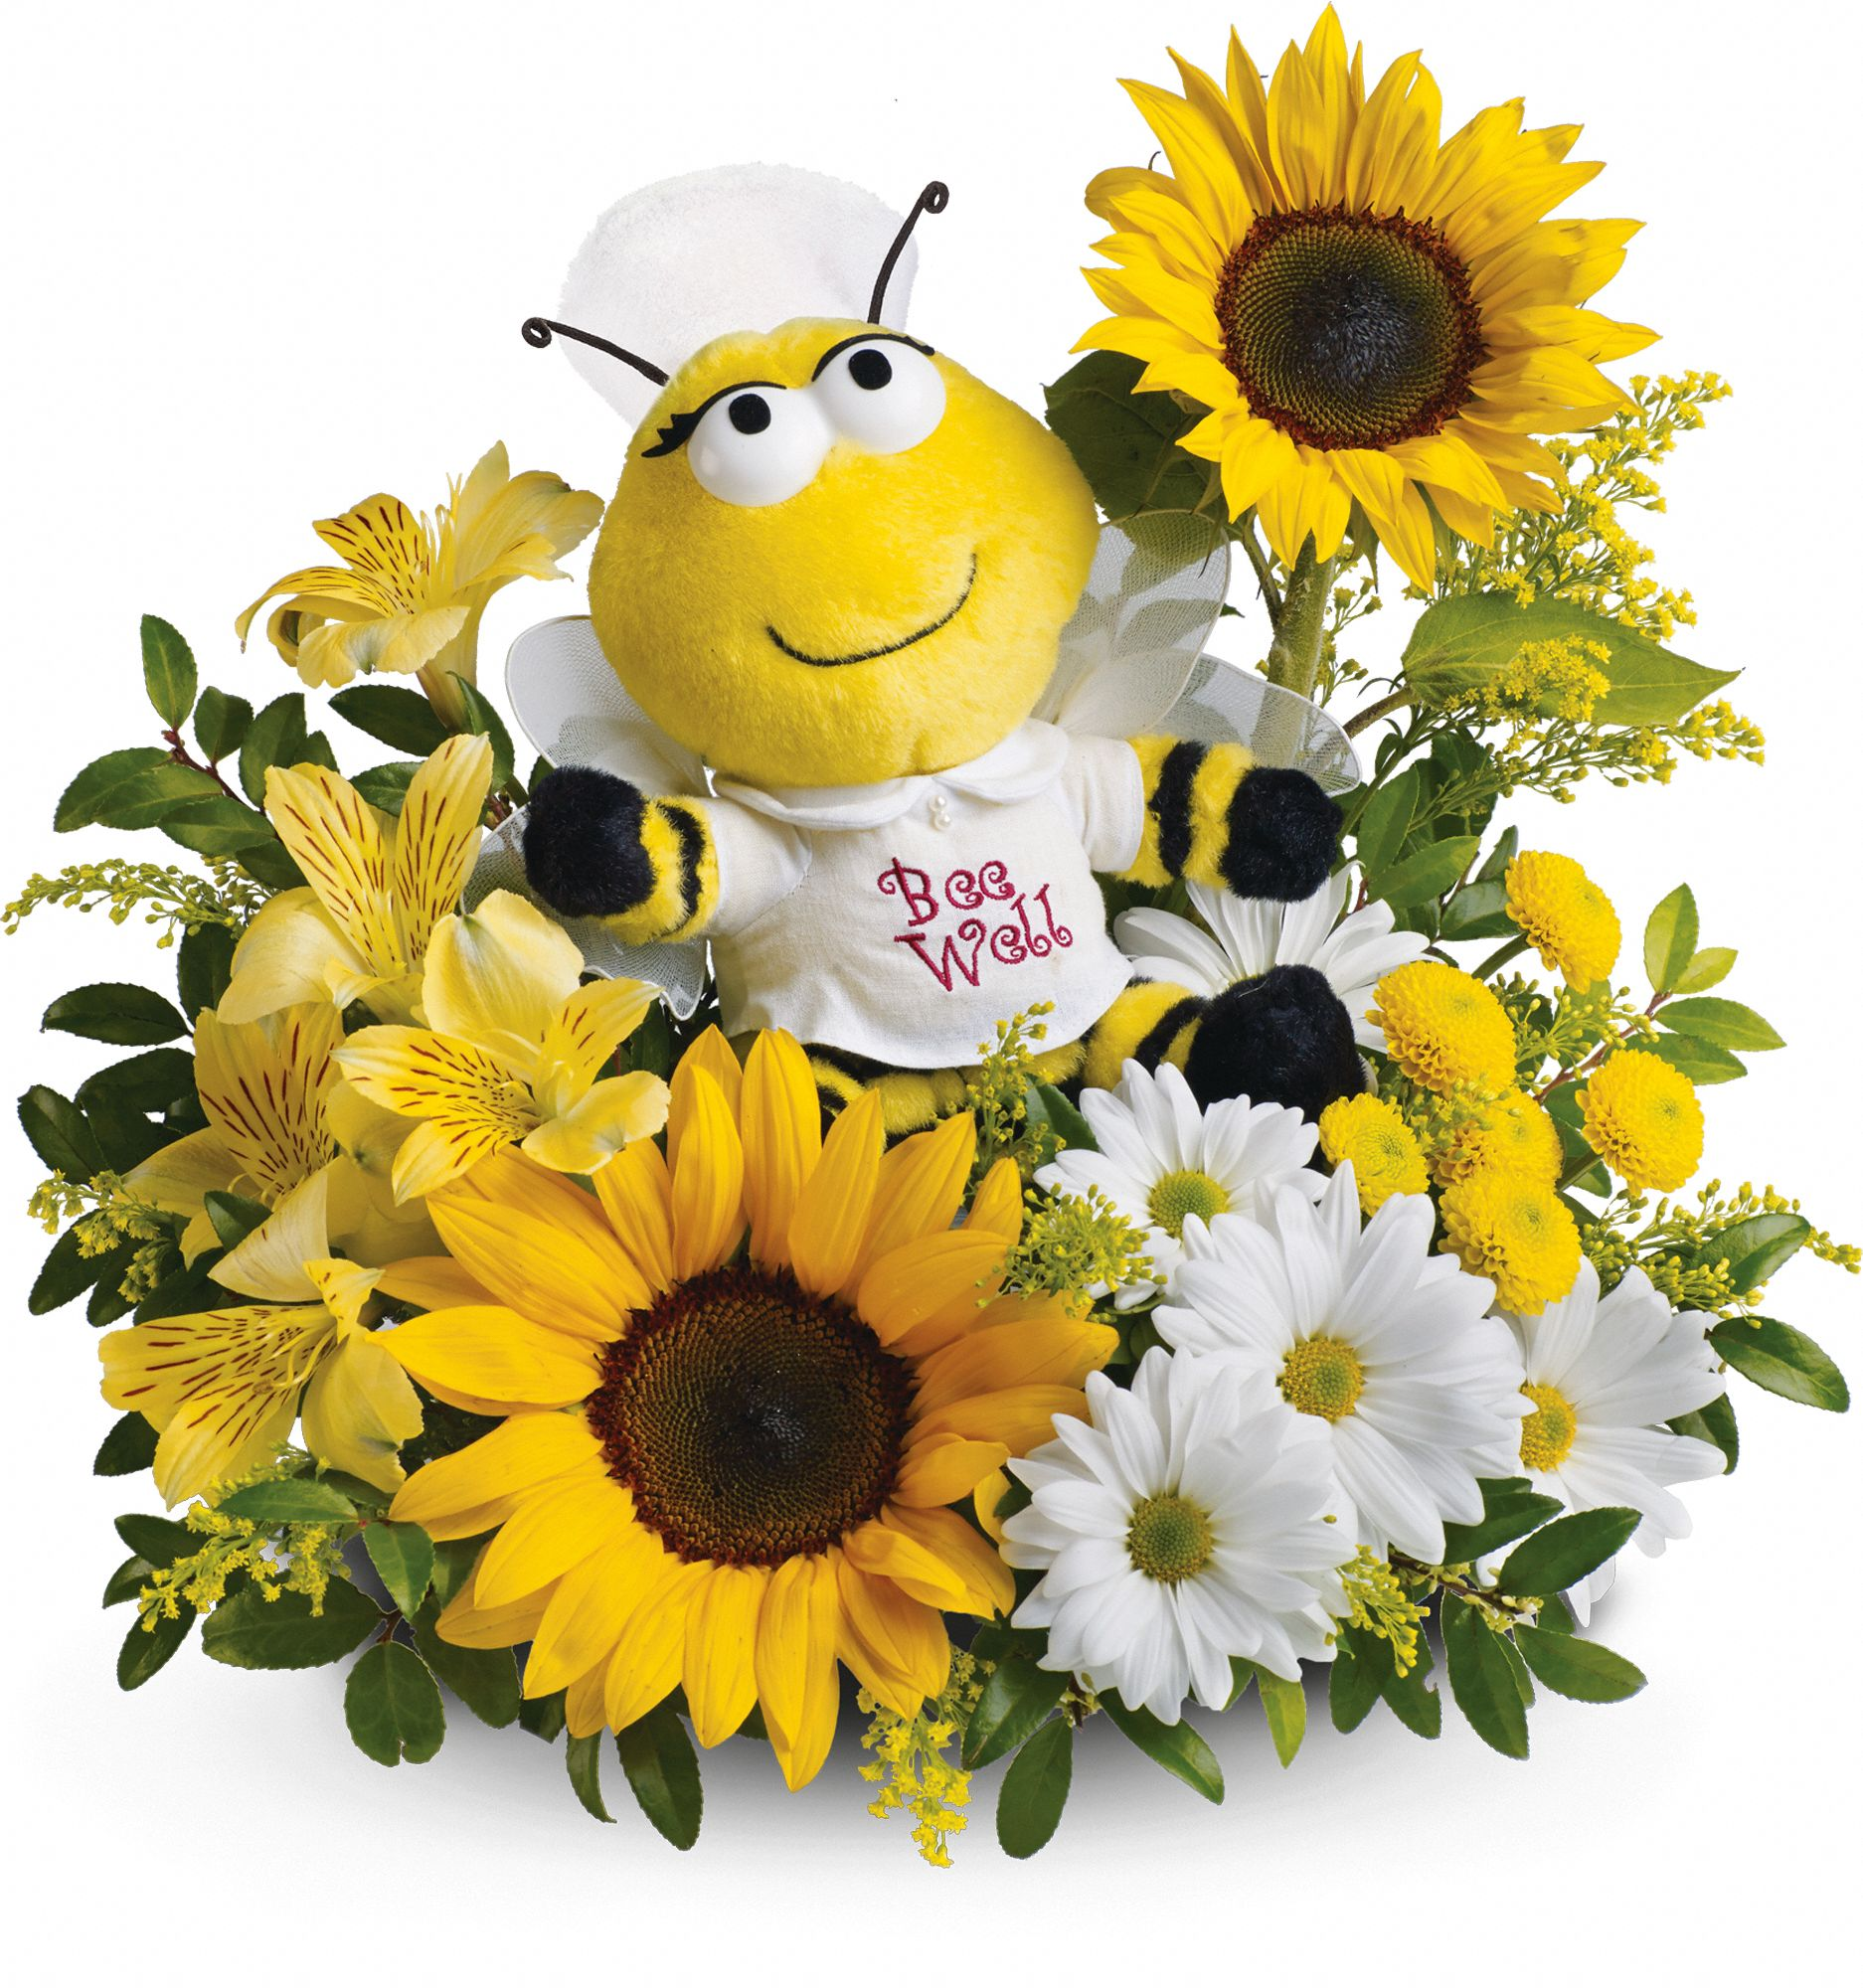 Plush bee with flowers